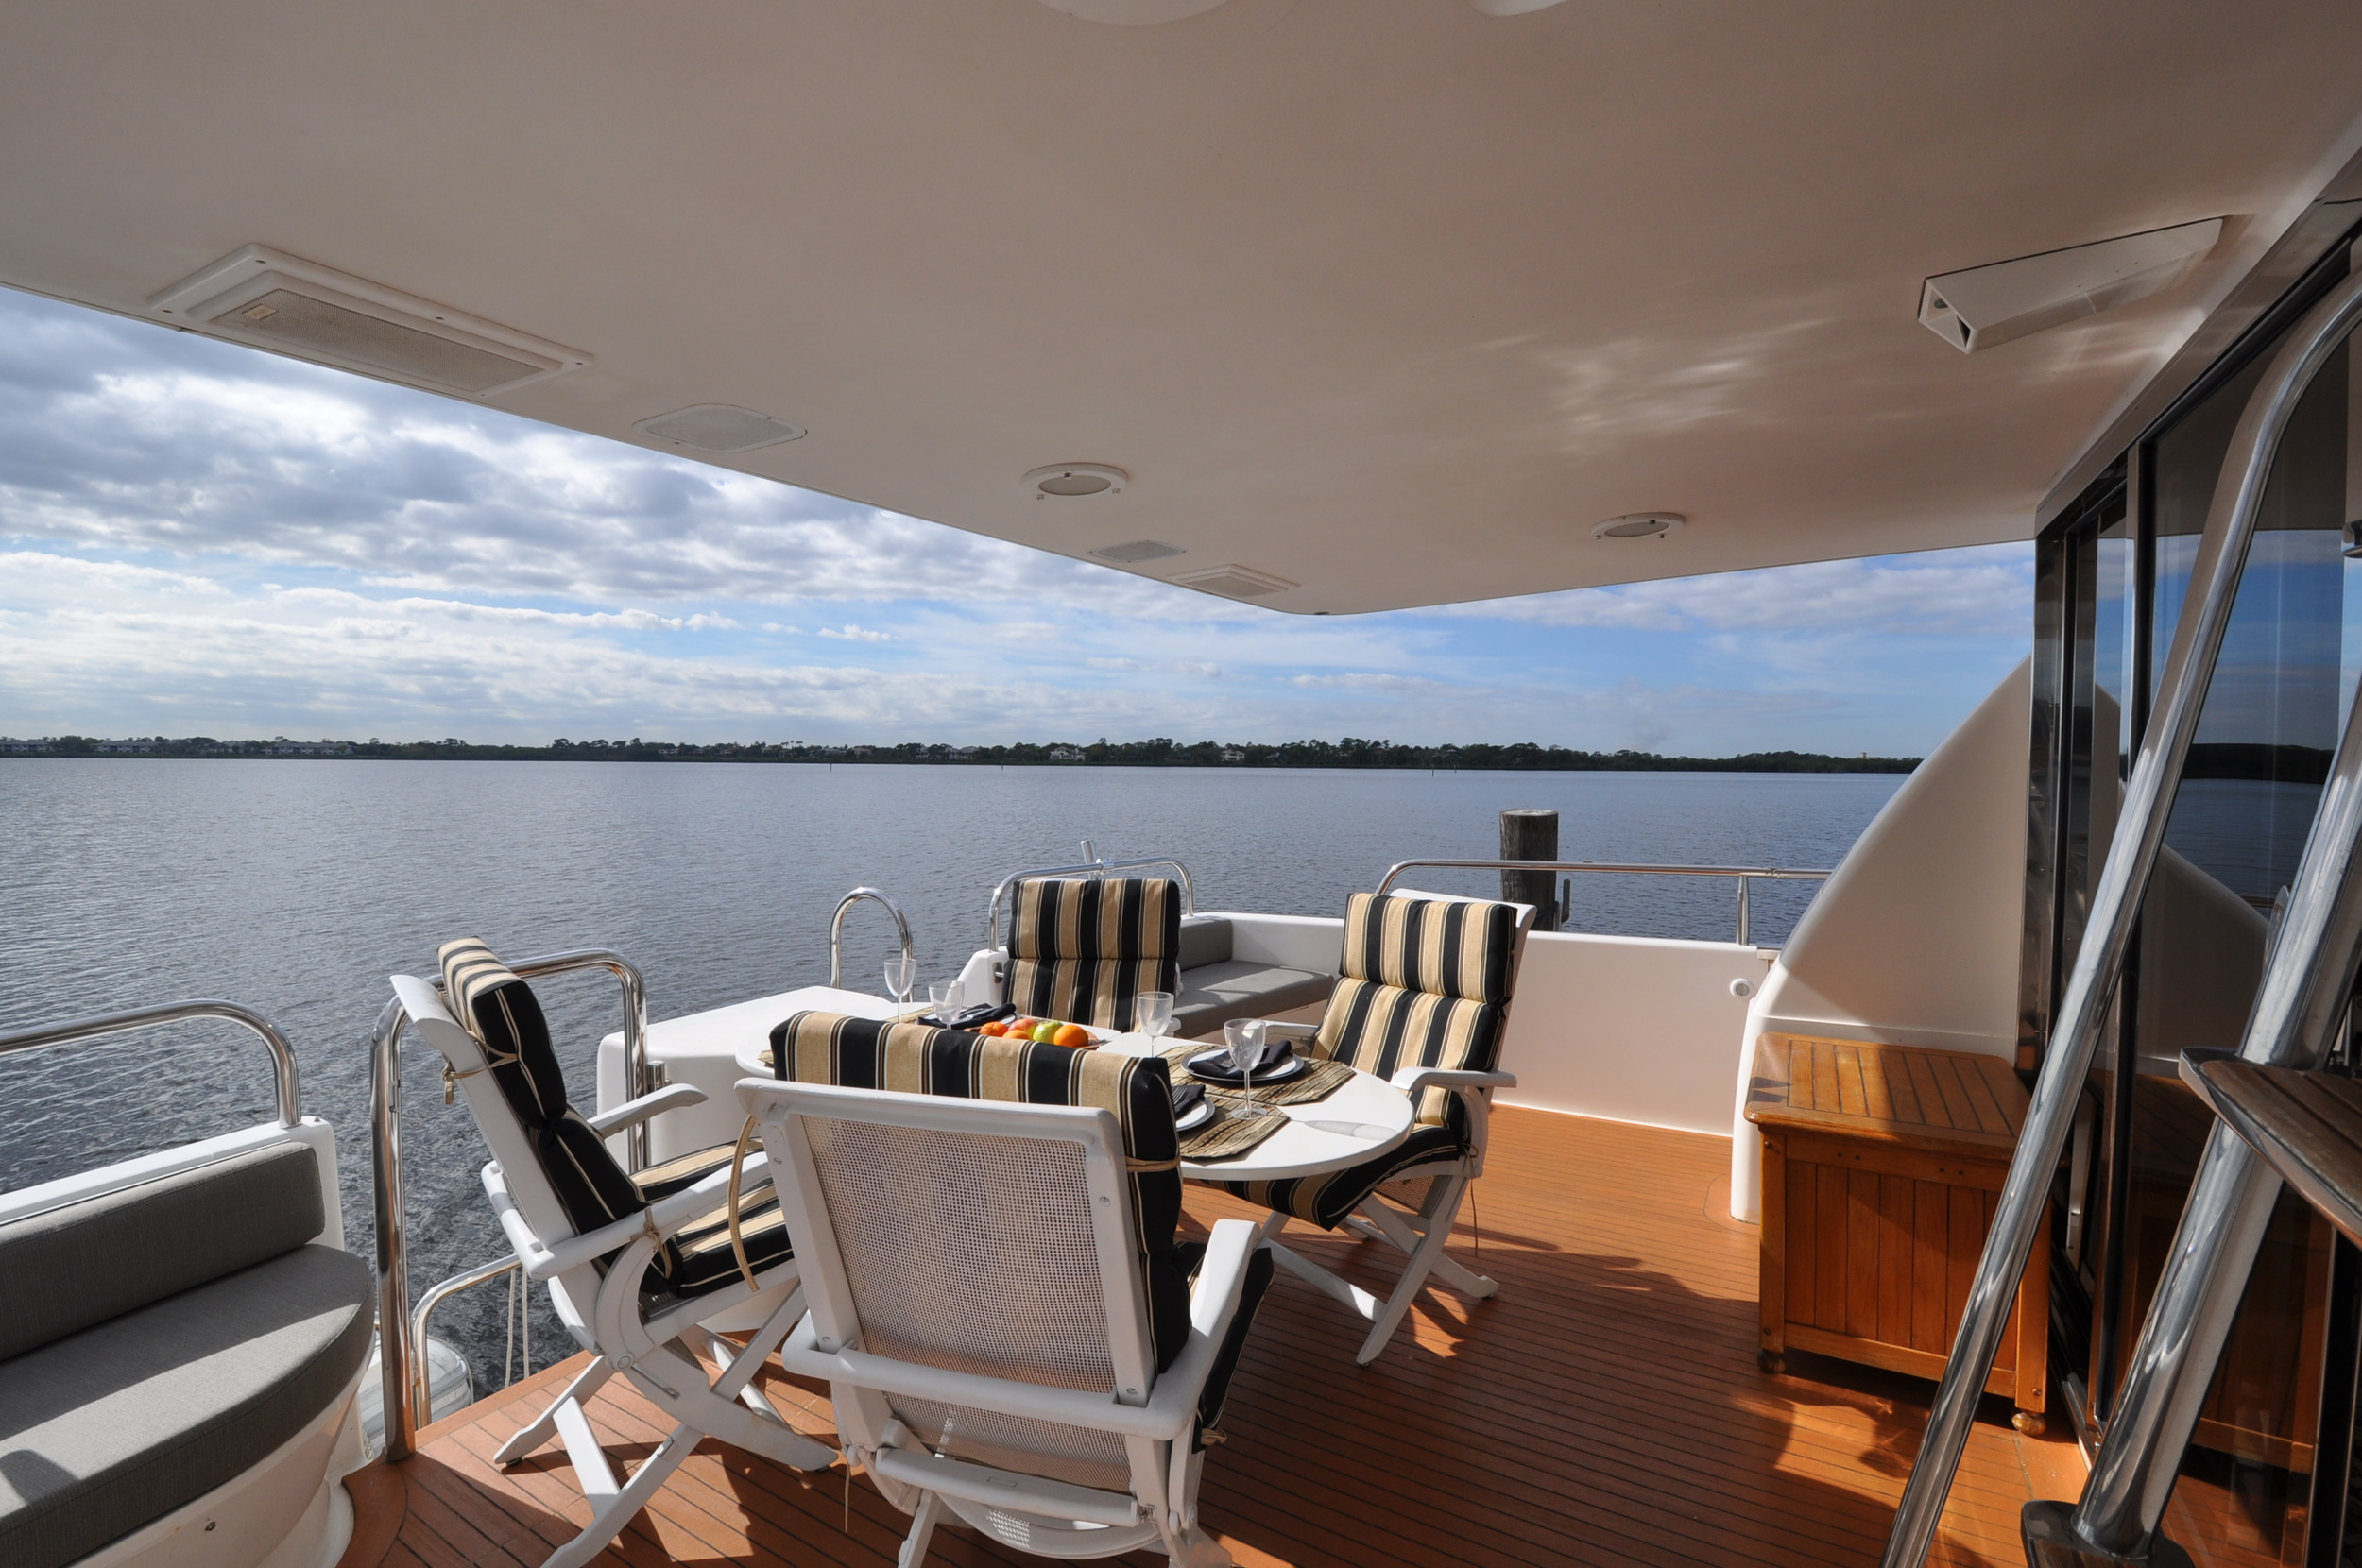 5 - Stern Deck facing aft.JPG